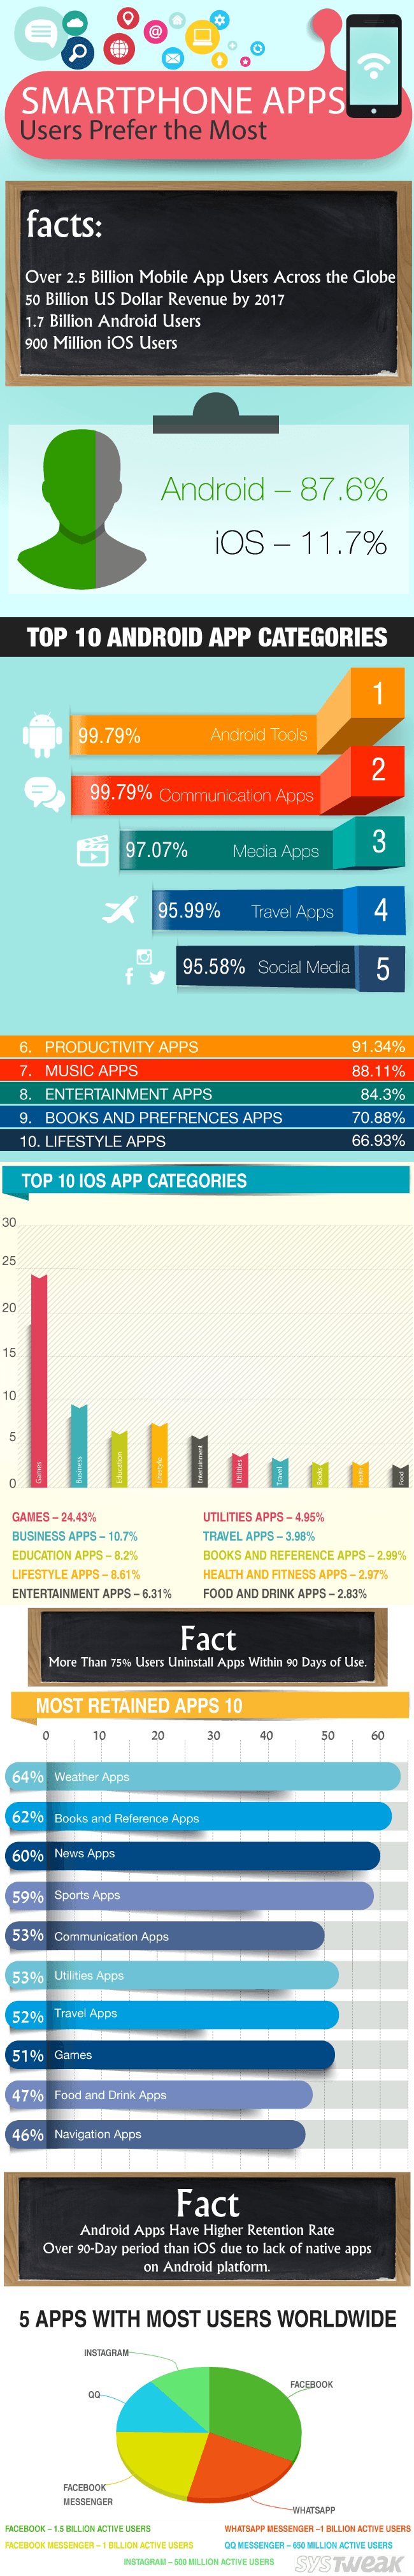 Top 10 Most Preferred Smart App Categories Infographic